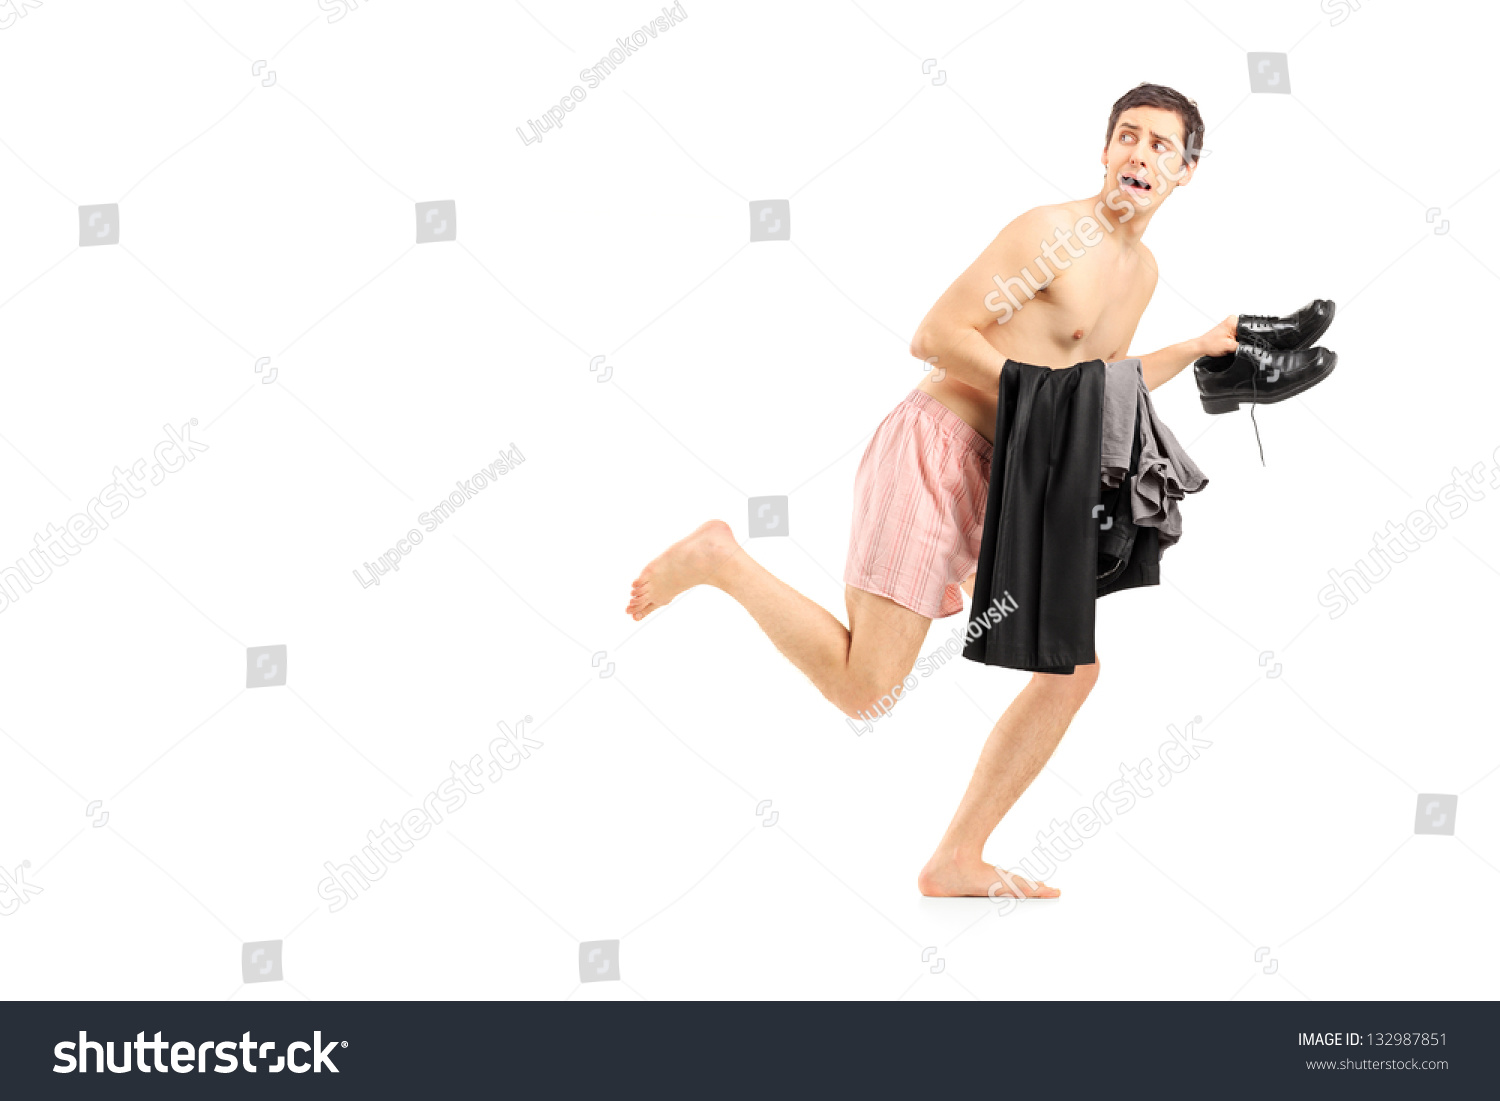 An Embarrassed Naked Man In Underwear Holding His Clothes